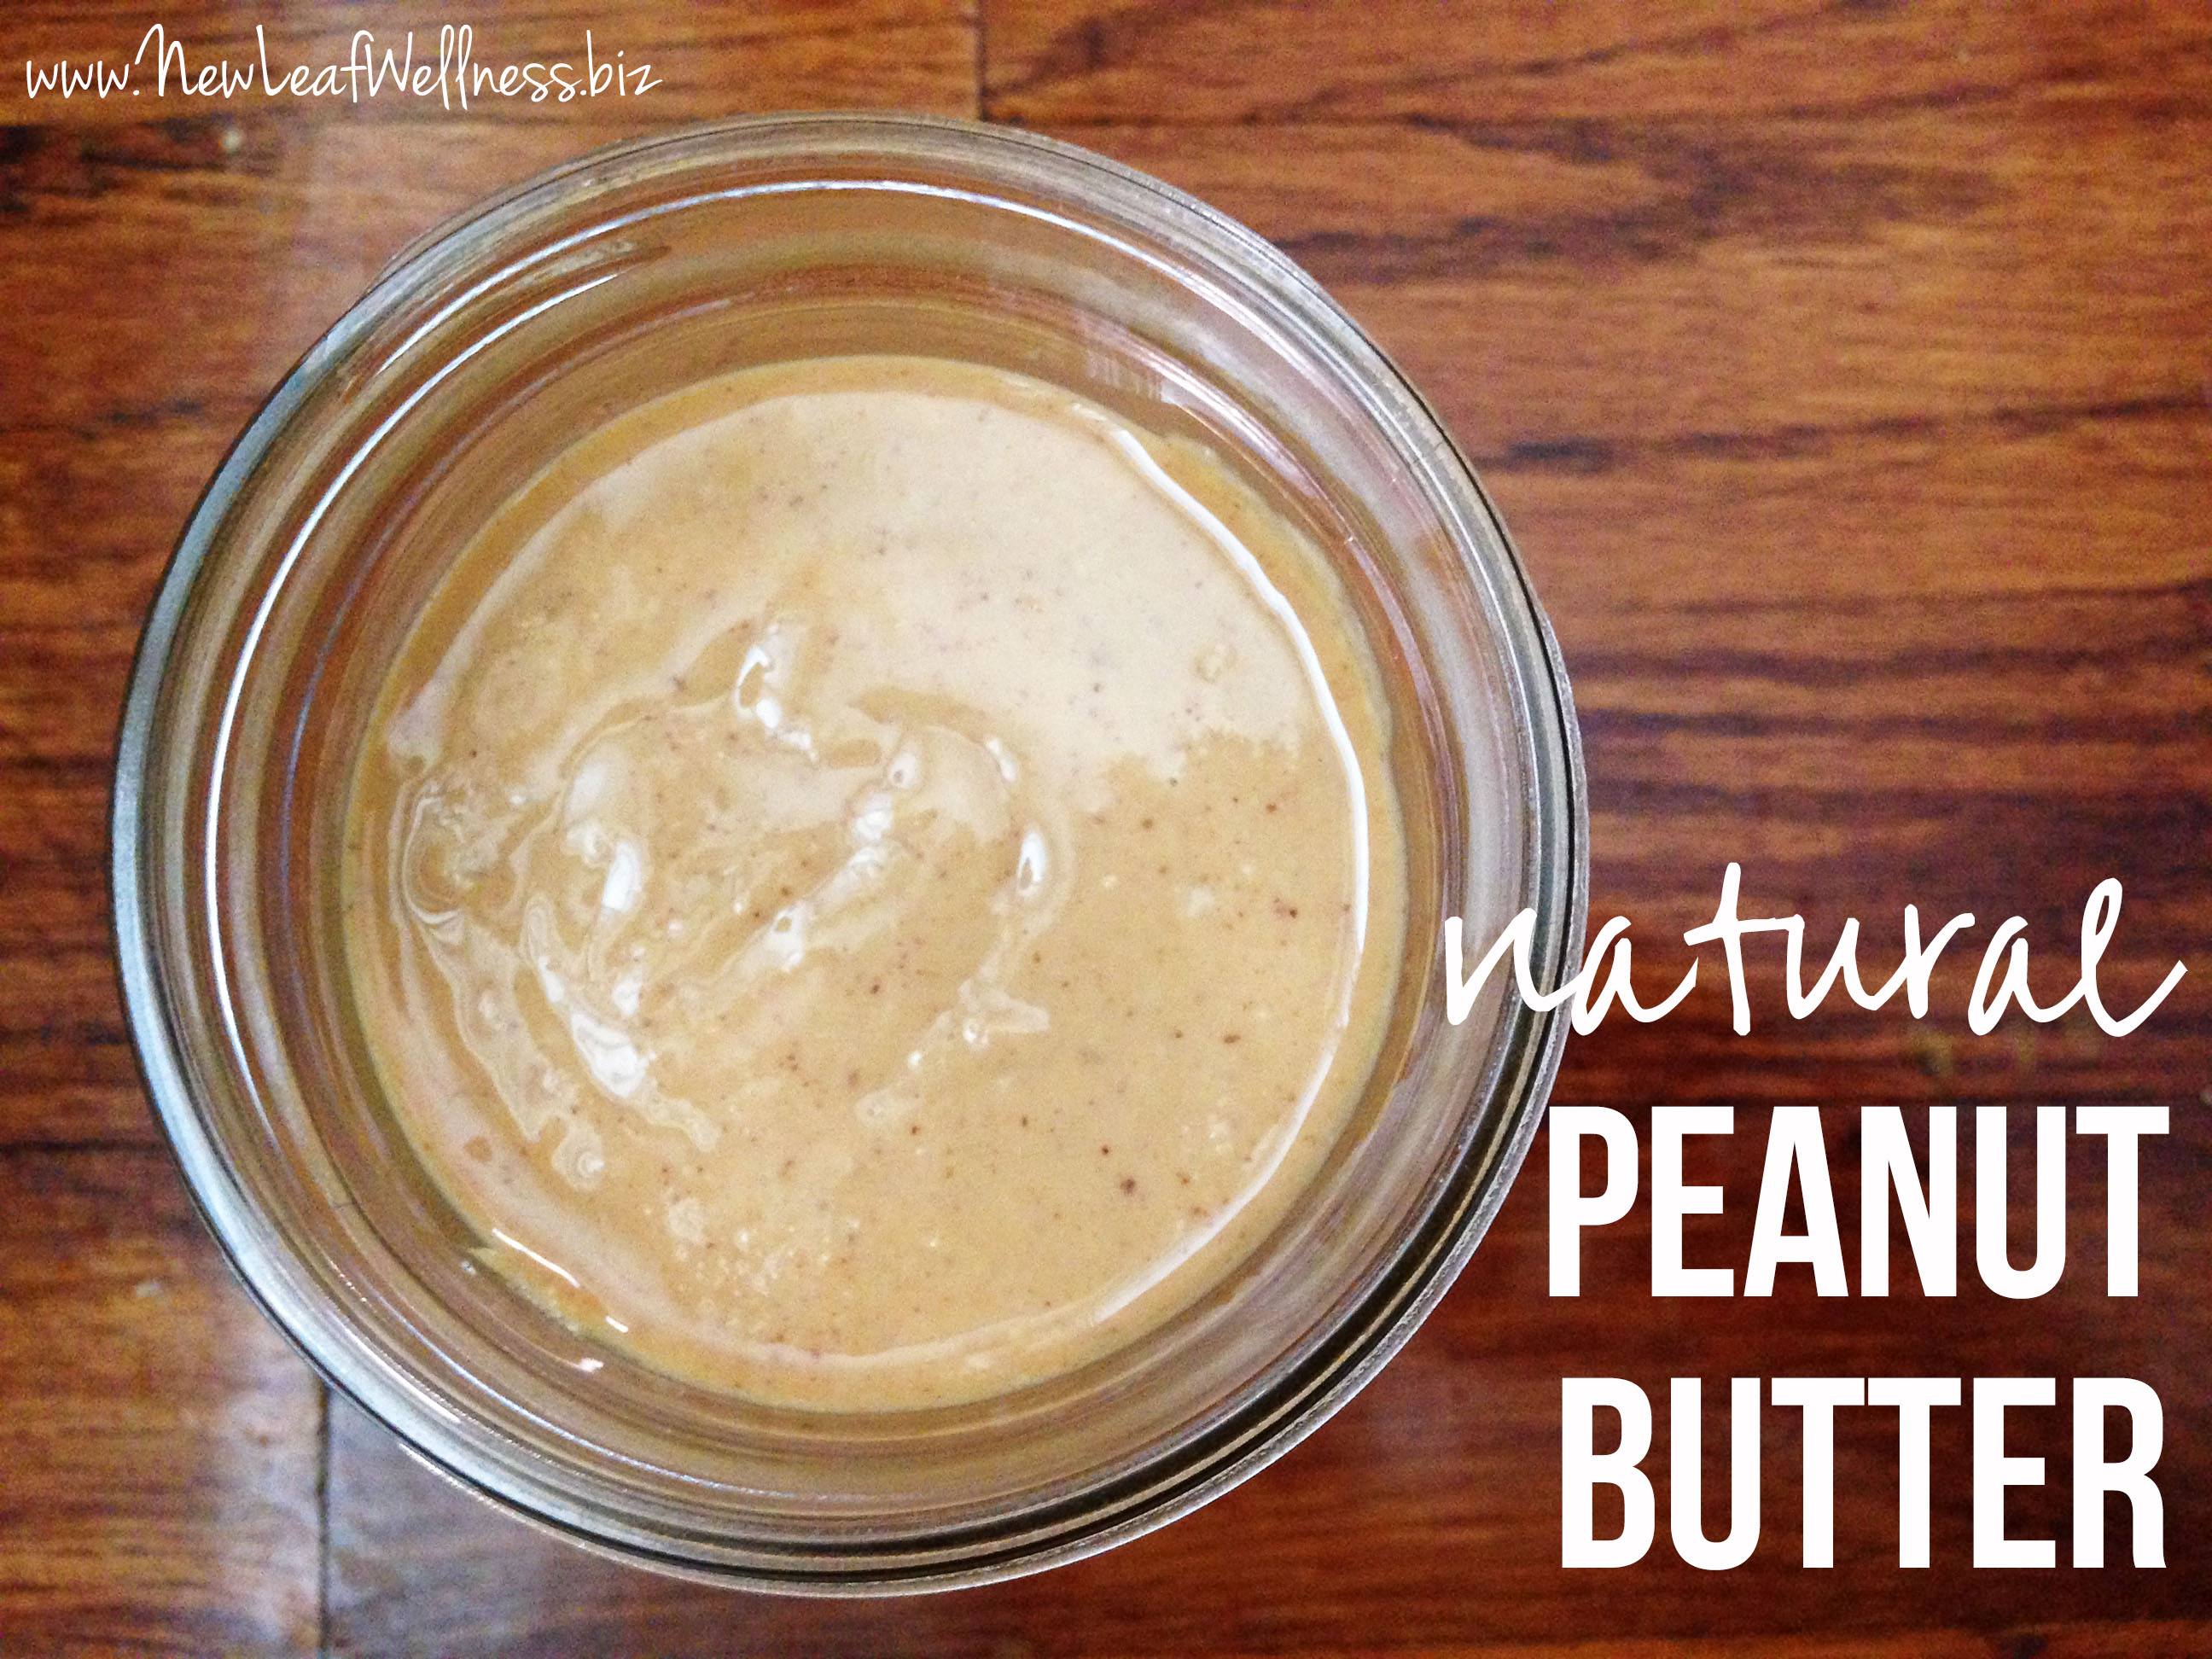 Homemade Natural Peanut Butter Recipe